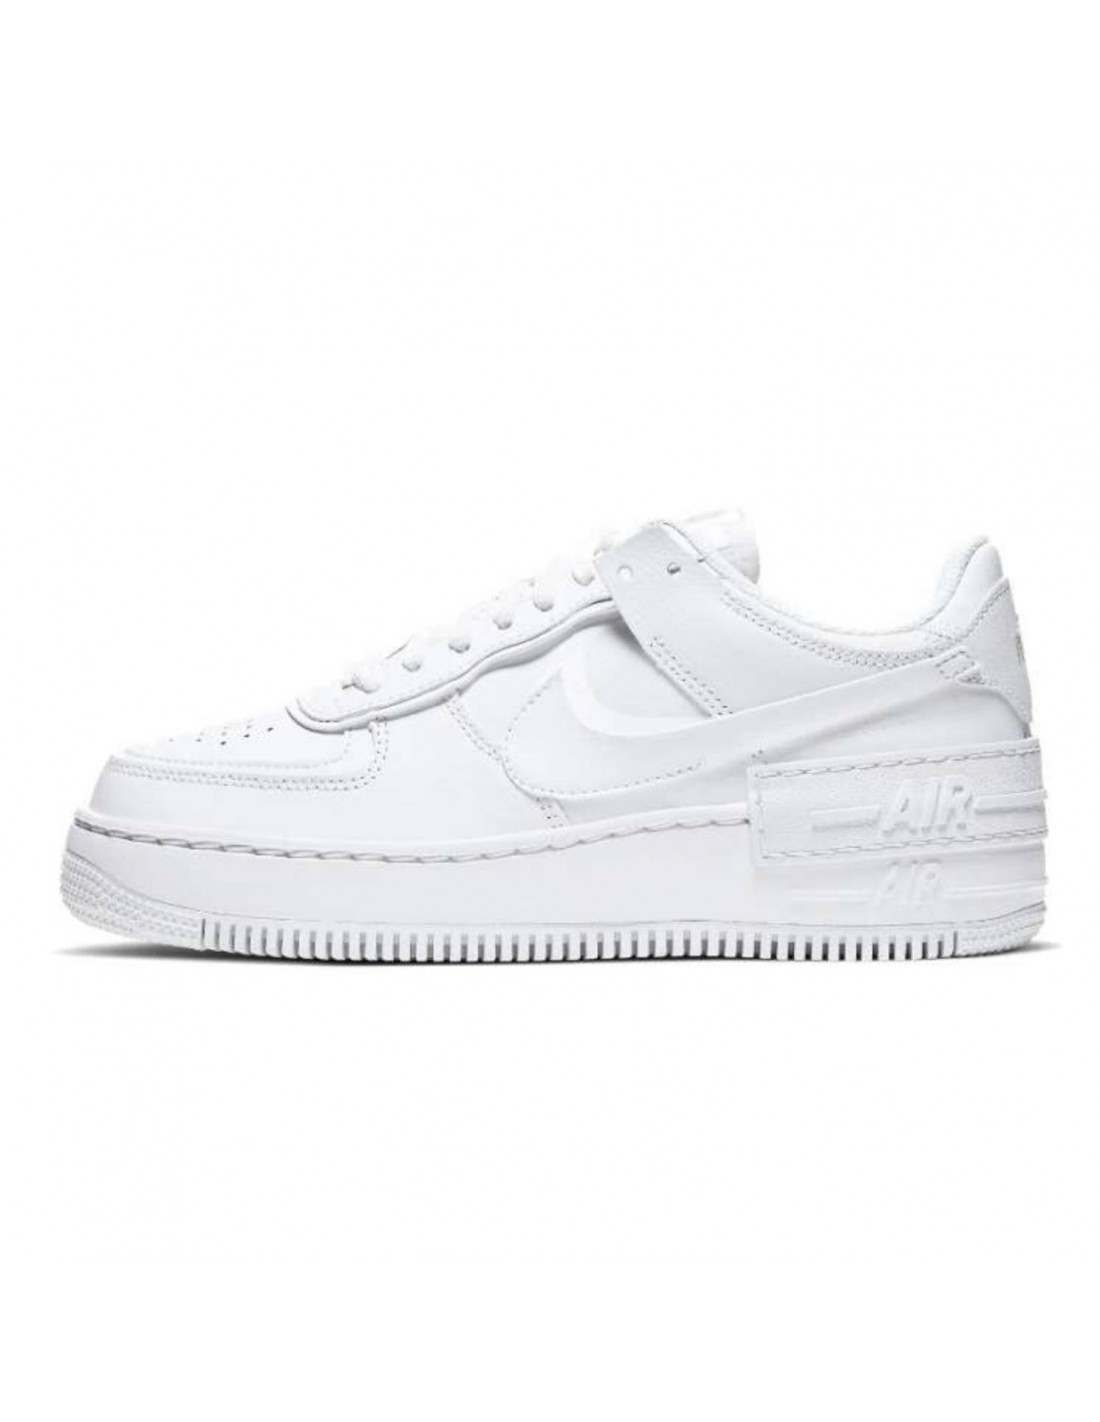 WHITE NIKE AIR FORCE ONE 40€ CHEAP FAST FREE SHIPPING MGSHOPS